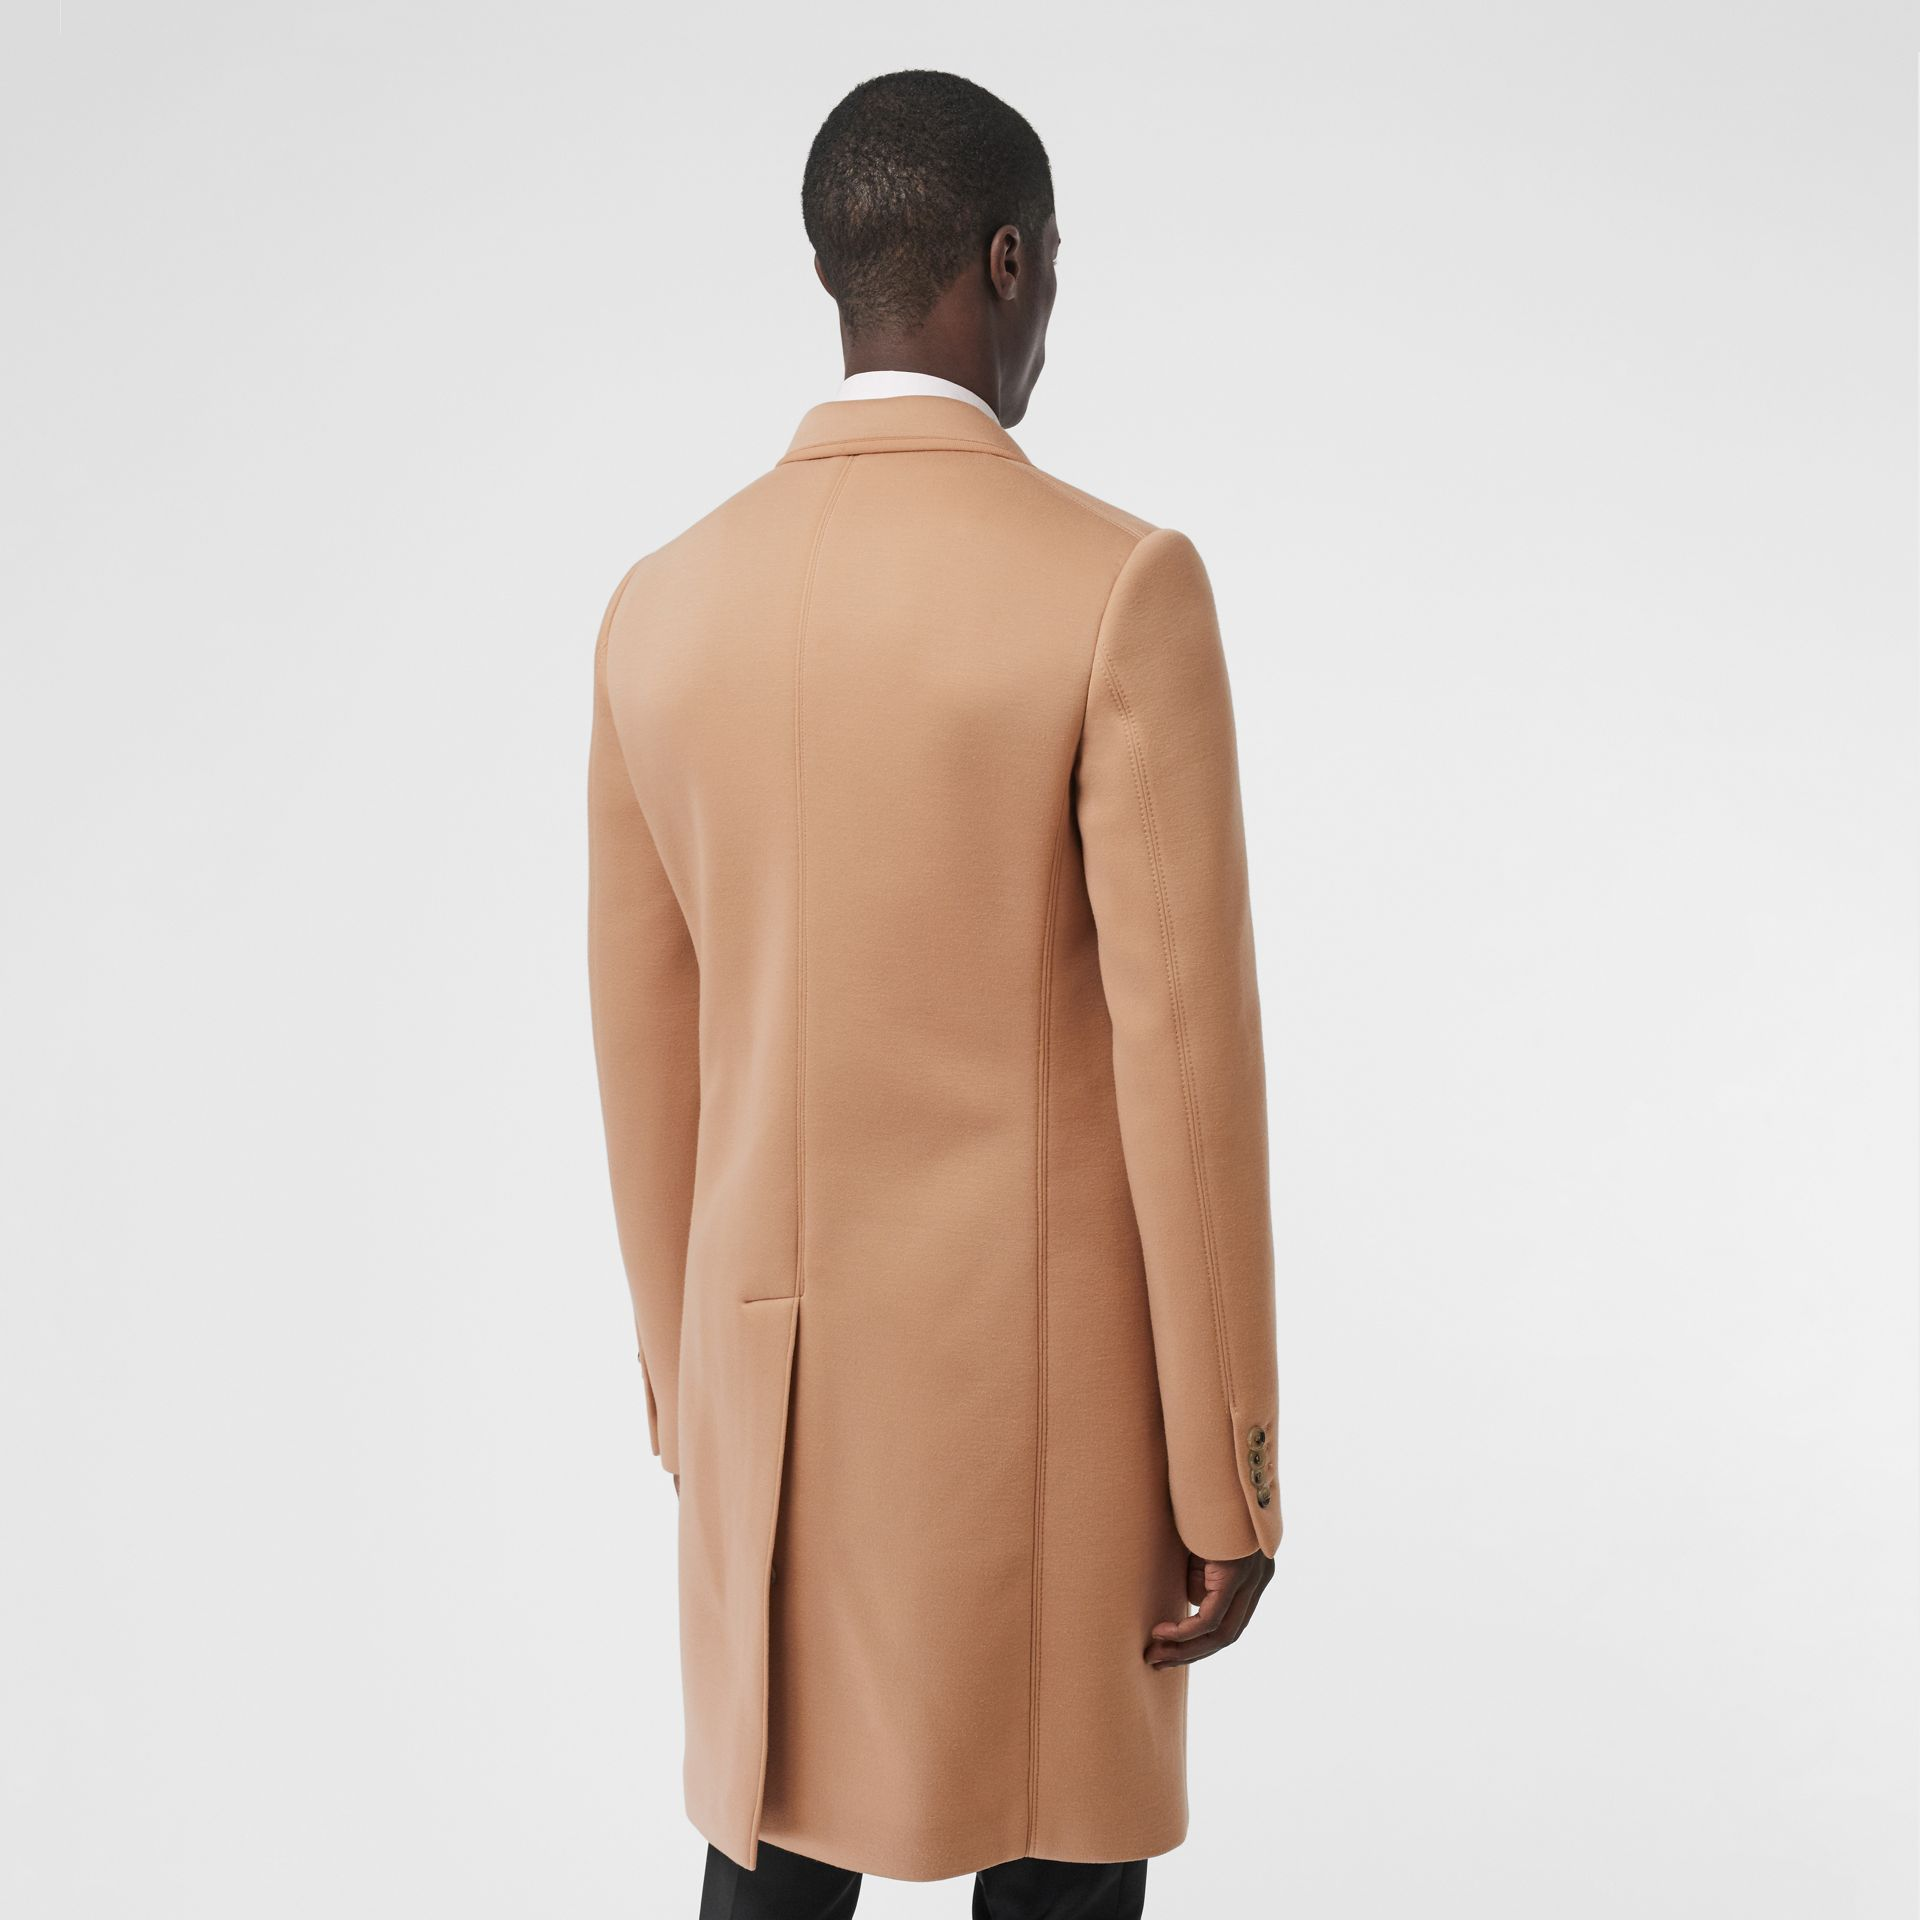 Neoprene Tailored Coat in Beige | Burberry United Kingdom - gallery image 2